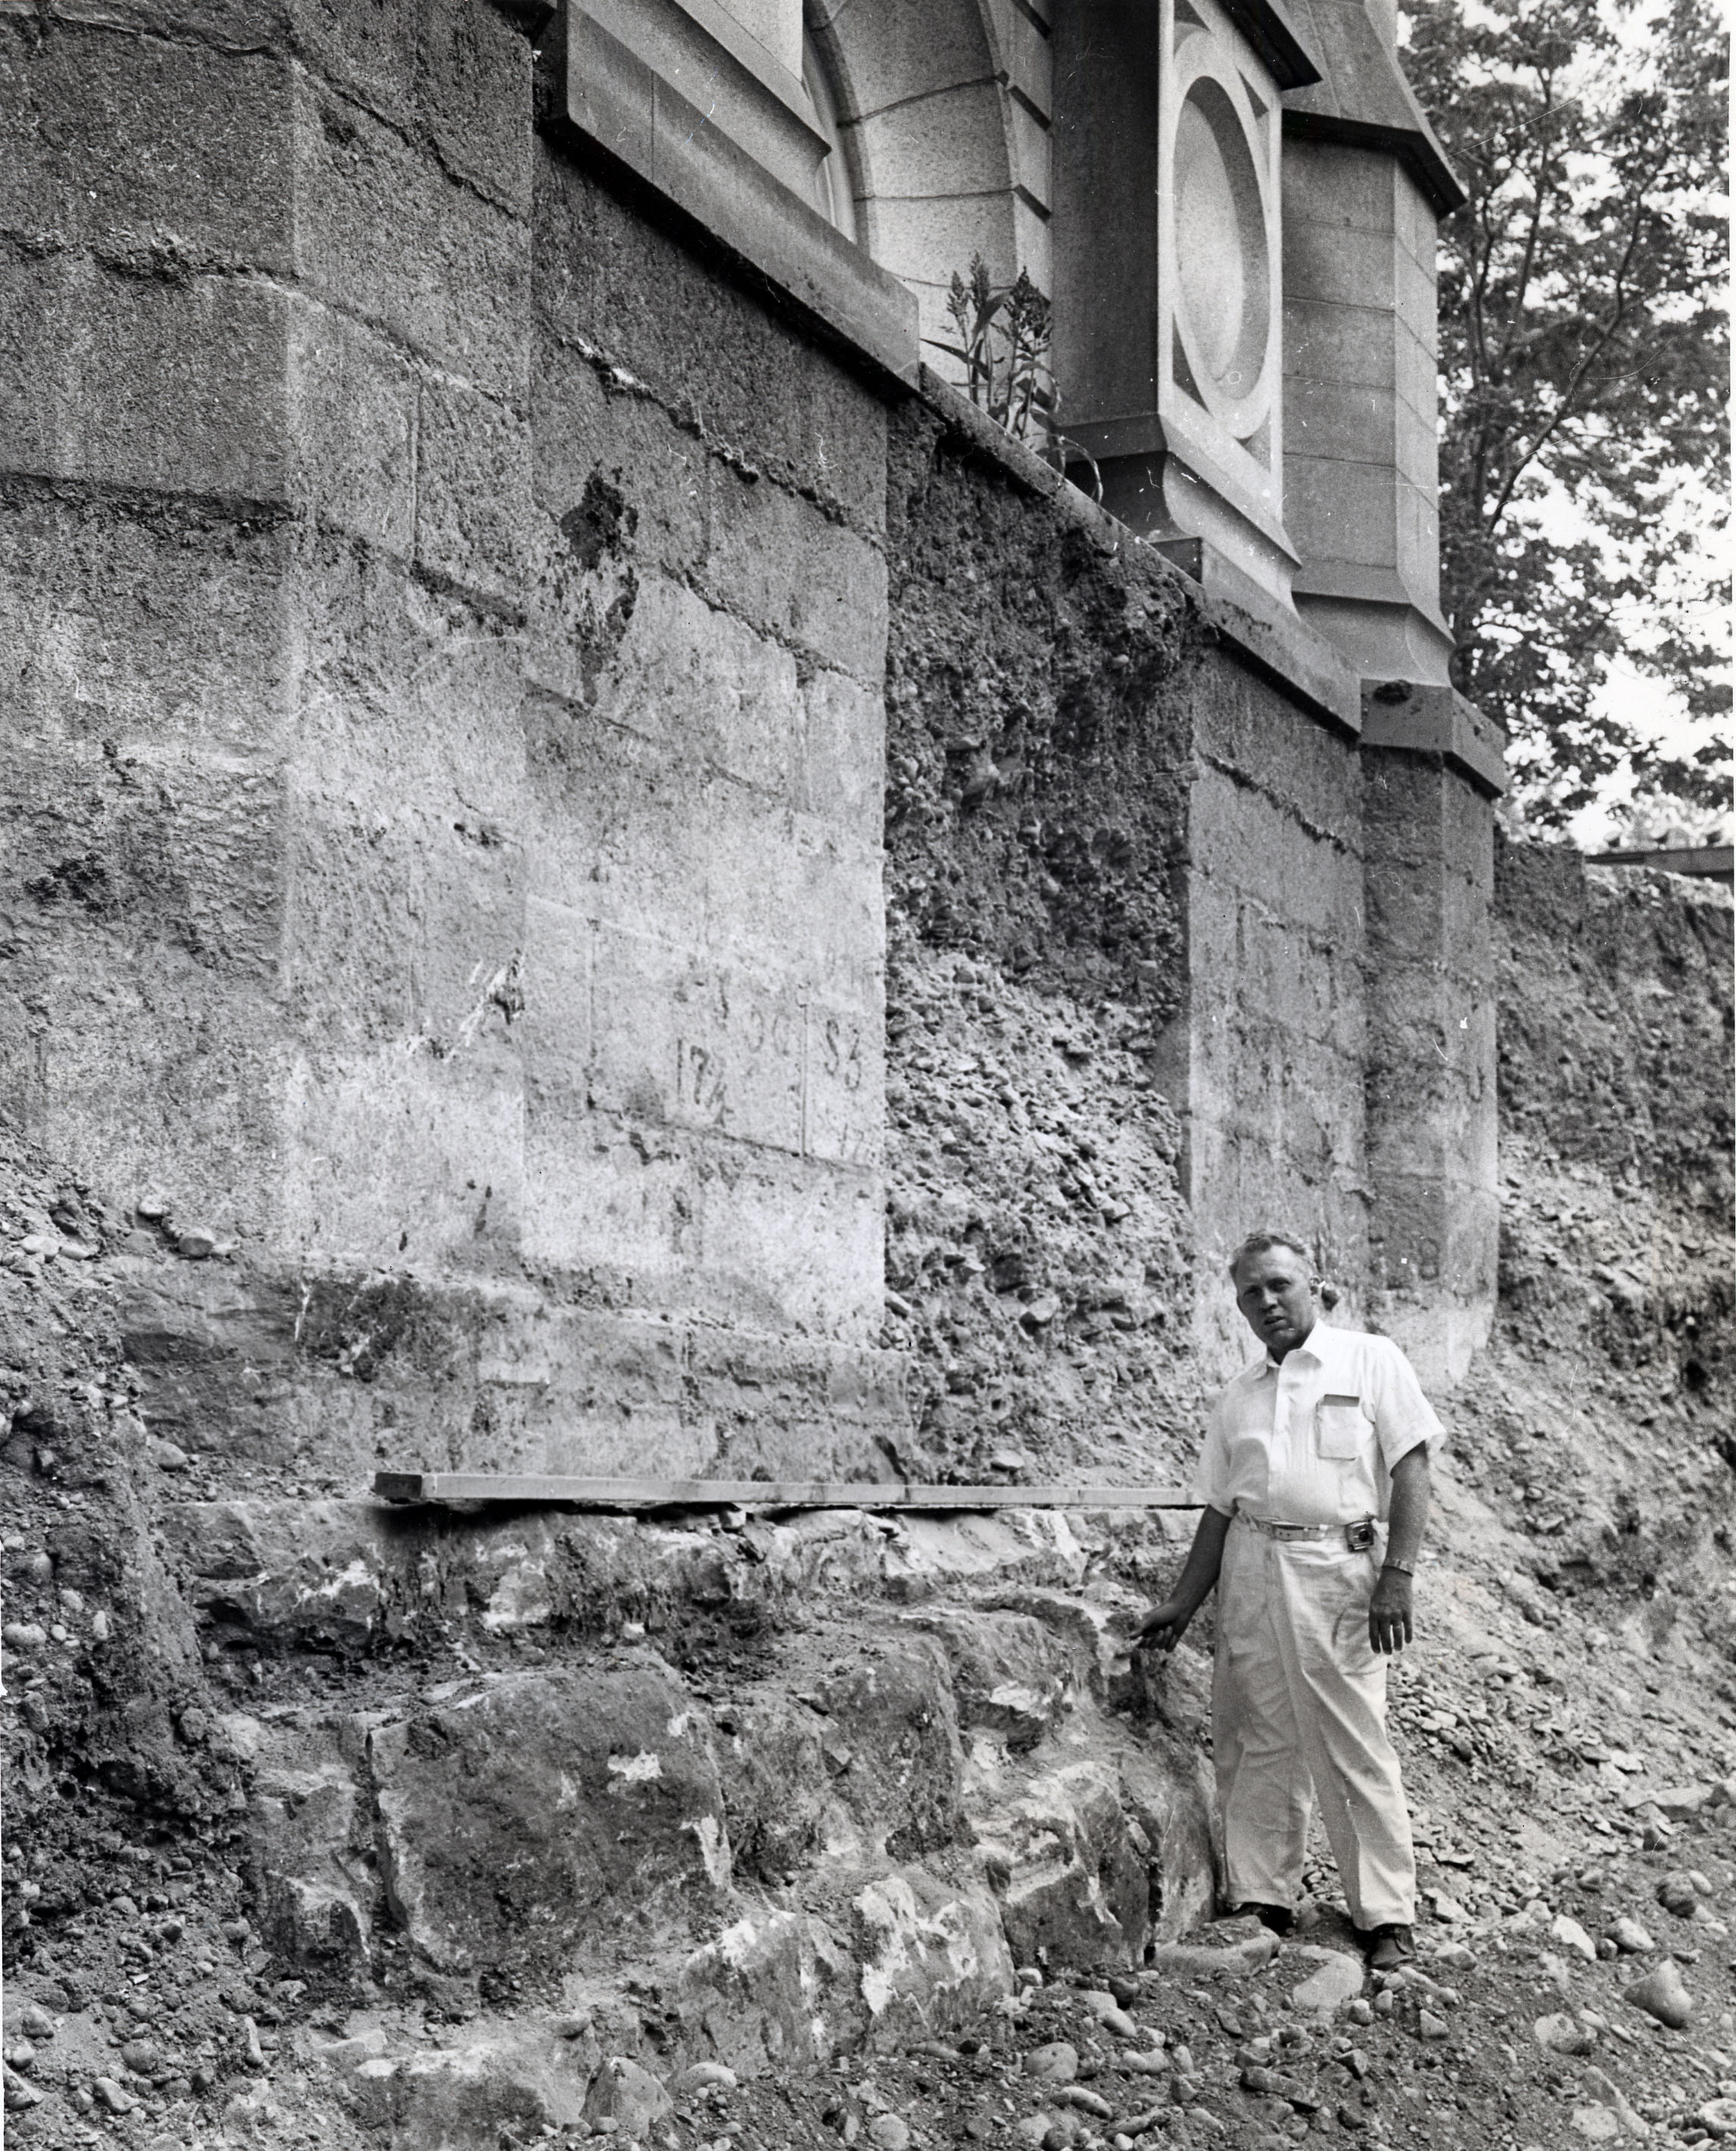 Linden W. Millgate, engineer, inspects the footings of the Salt Lake Temple while its massive foundation was exposed during work on Sept. 8, 1962.